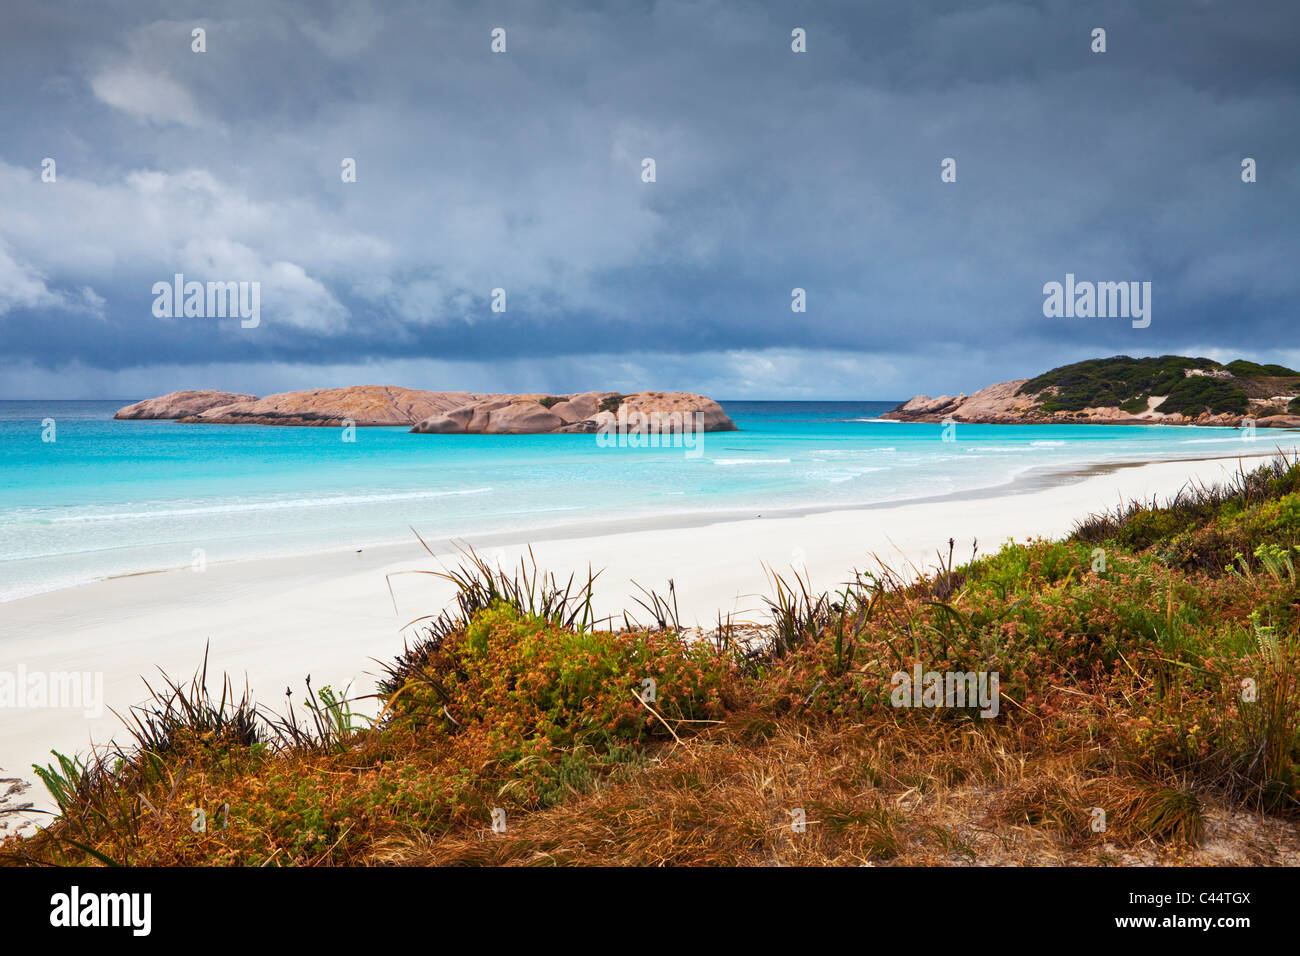 Twilight Beach, Esperance, Australia occidentale, Australia Immagini Stock